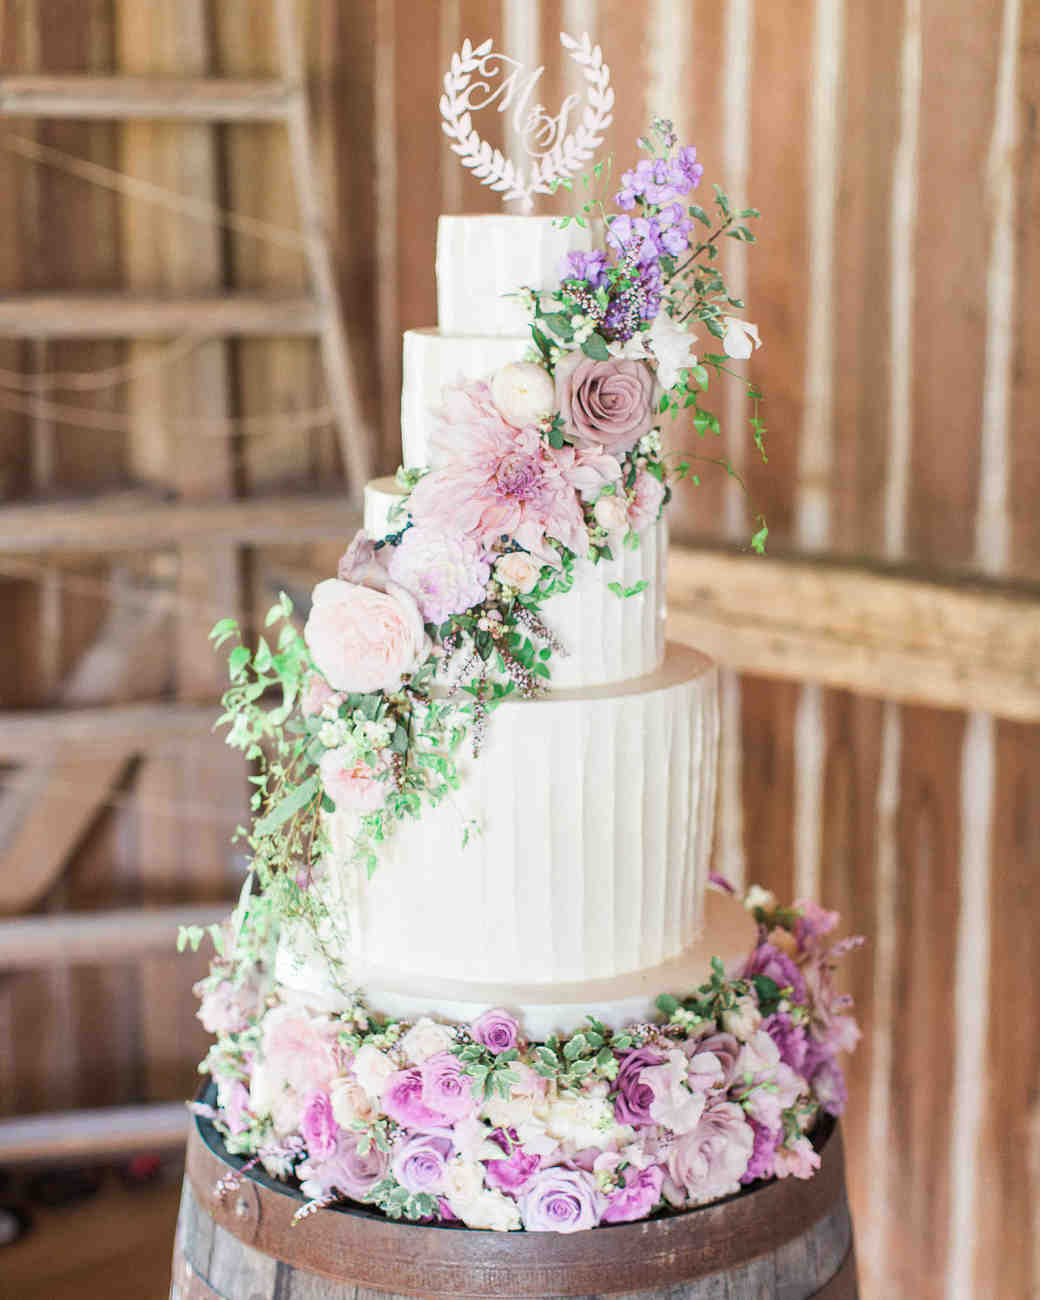 floral wedding cake with monogram cake topper